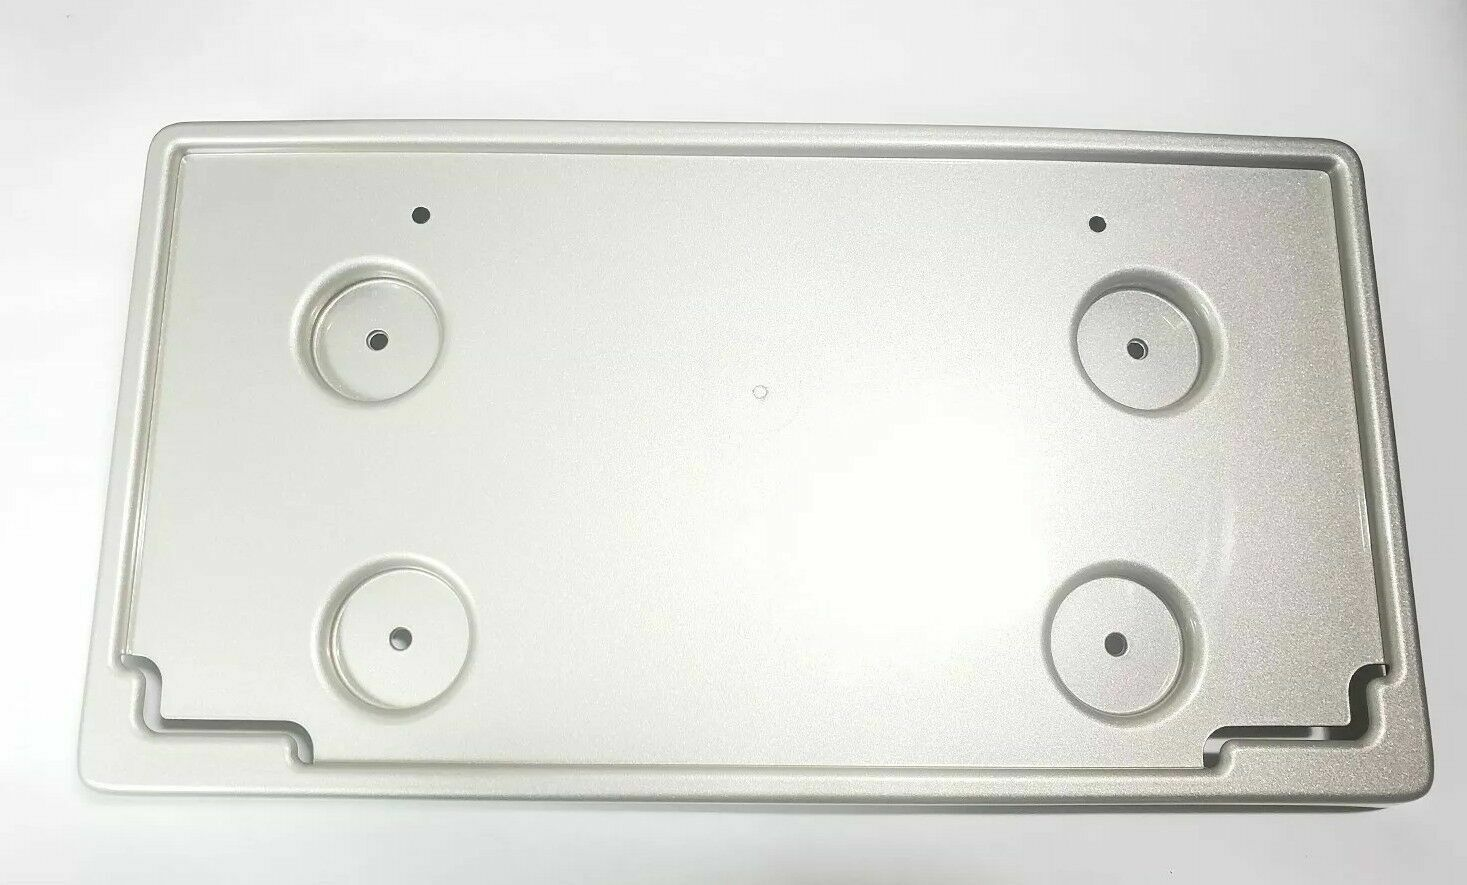 2007-2013 CADILLAC ESCALADE FRONT LICENSE PLATE MOUNTING BRACKET 15941065 GM OEM